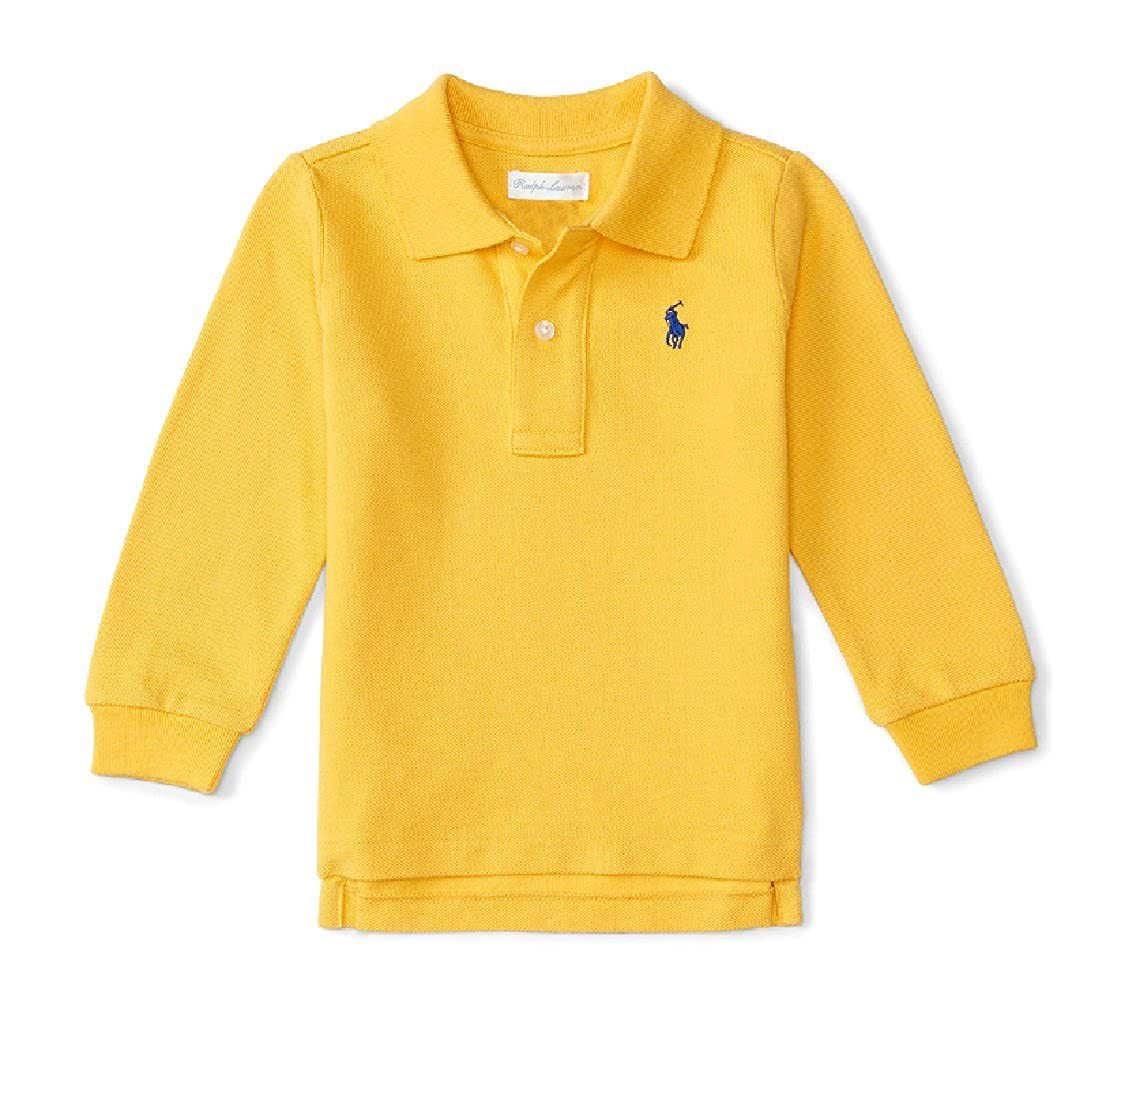 Ralph Lauren Baby Boy Long Sleeve Polo Shirt, Top Authentic 9m